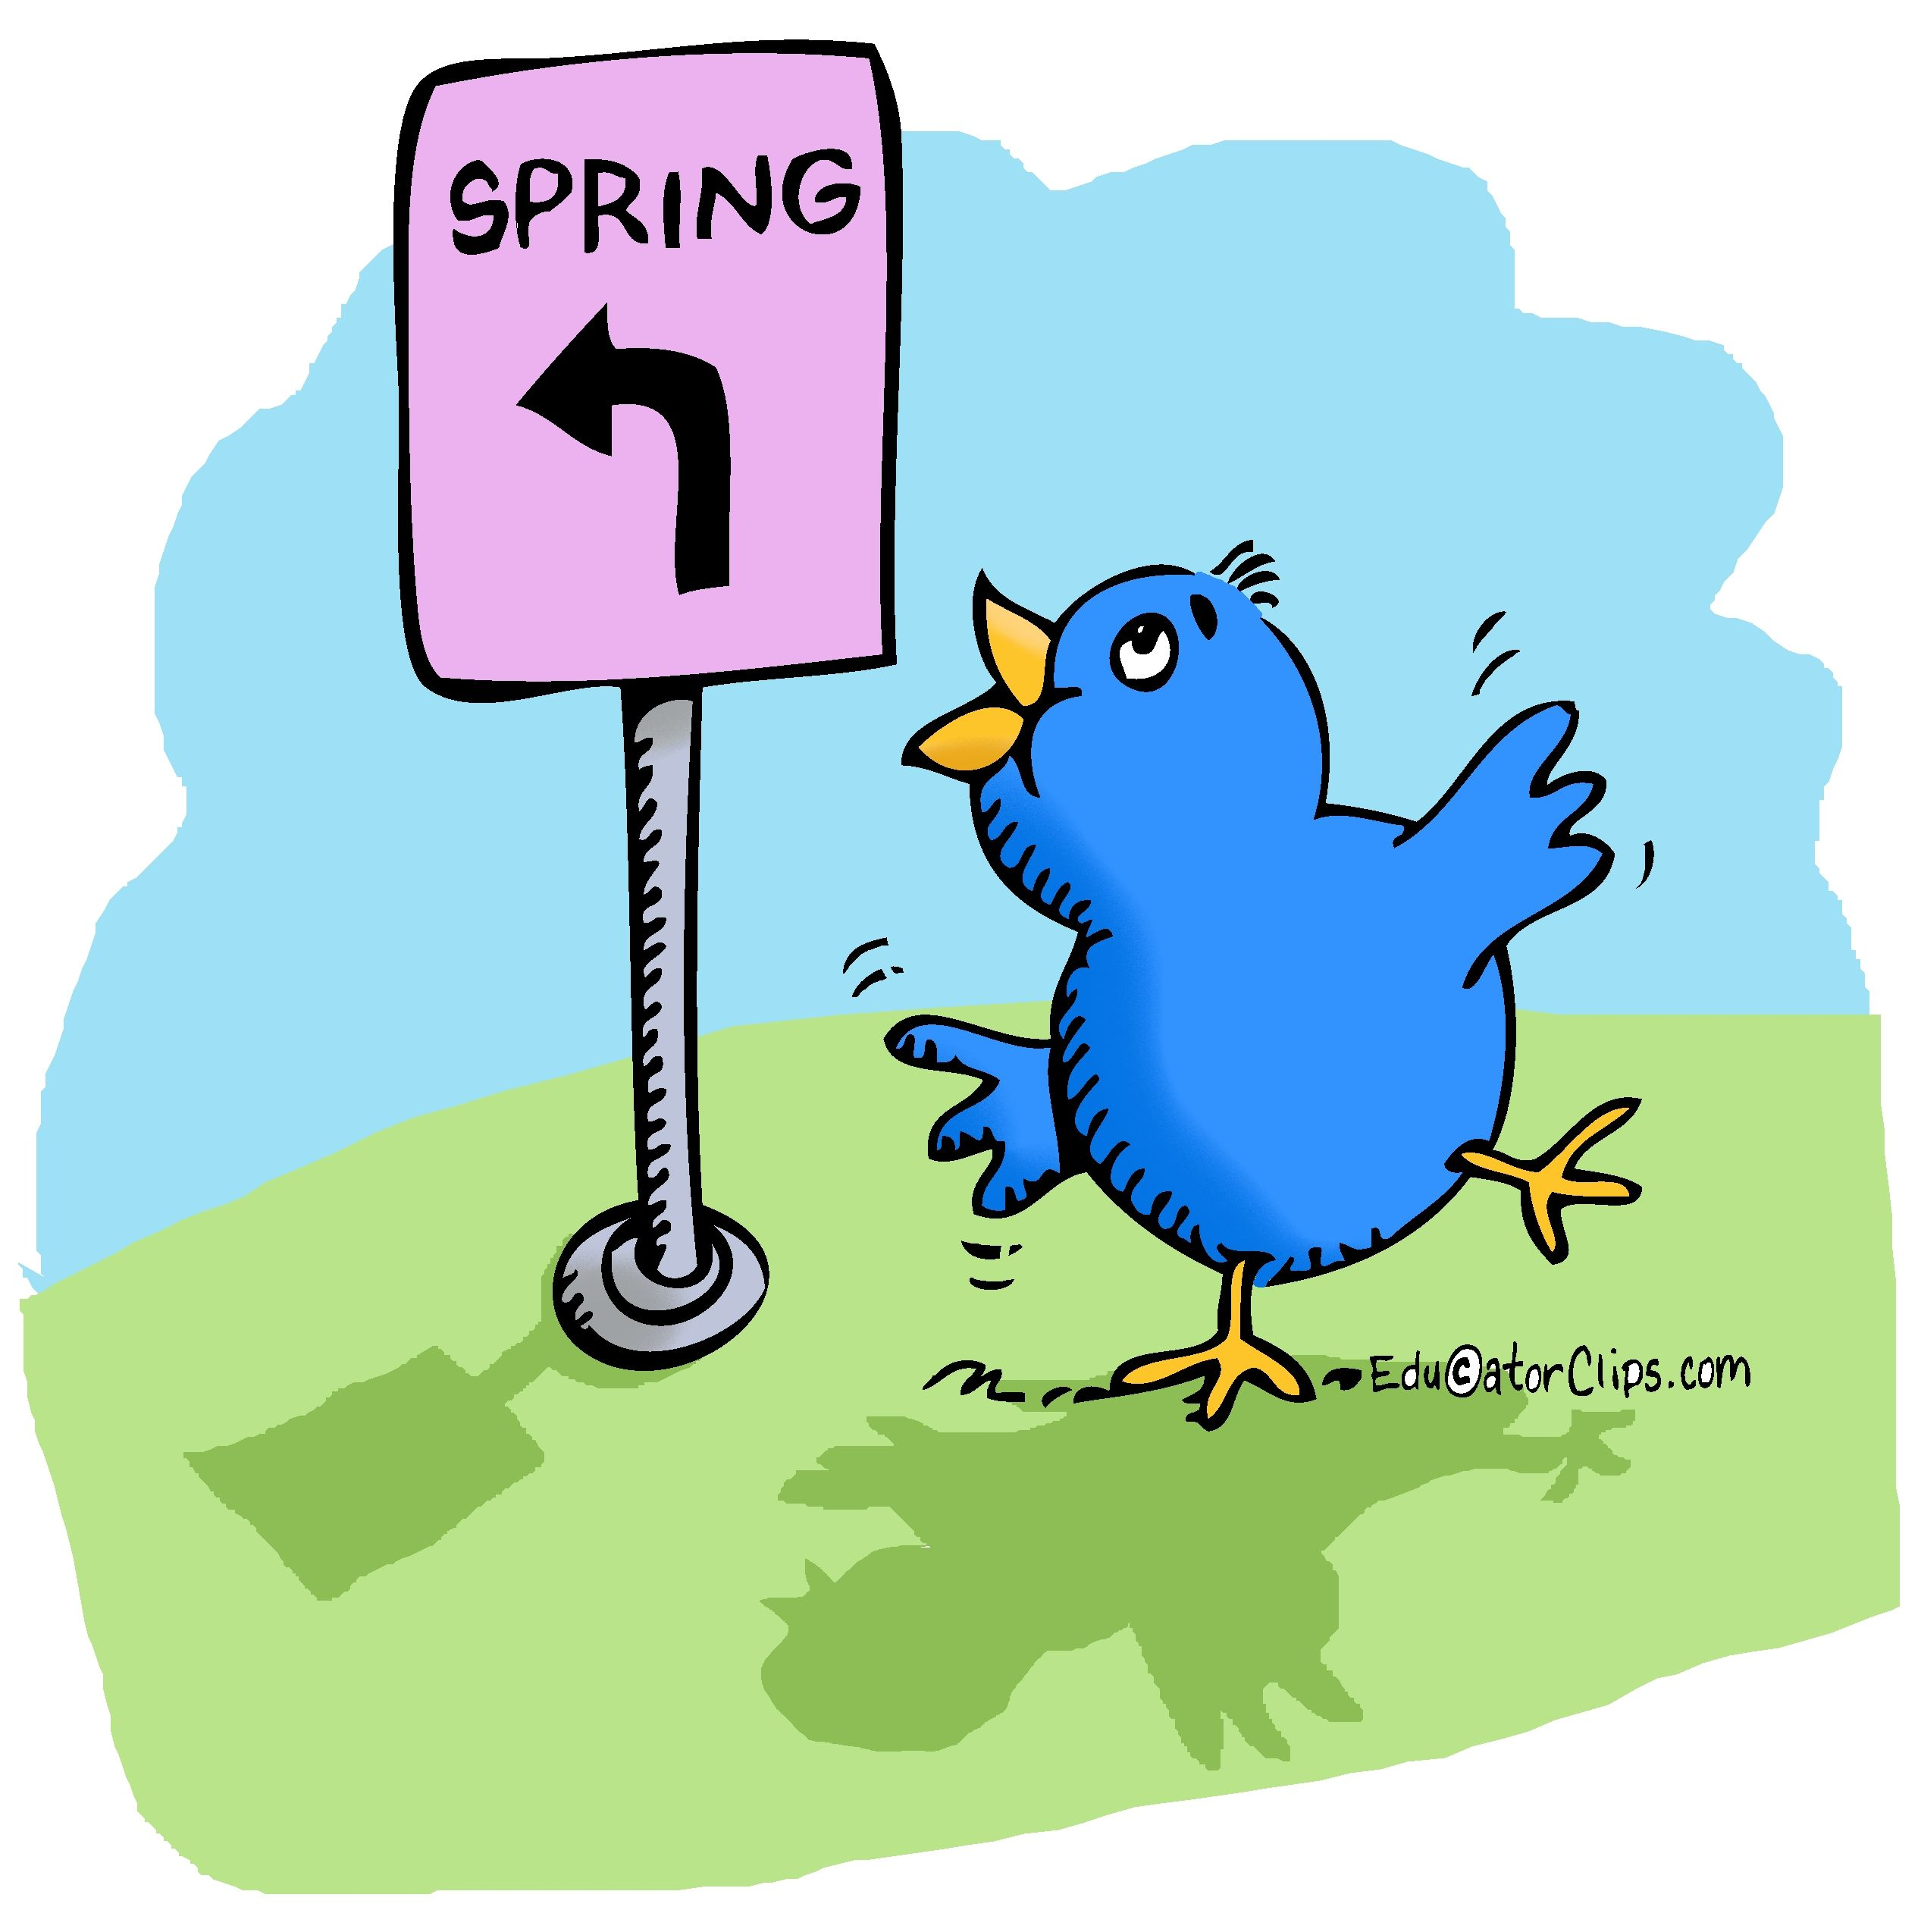 Spring bluebird clipart banner black and white library Get clip art for teachers at www.EducatorClips.com ... banner black and white library